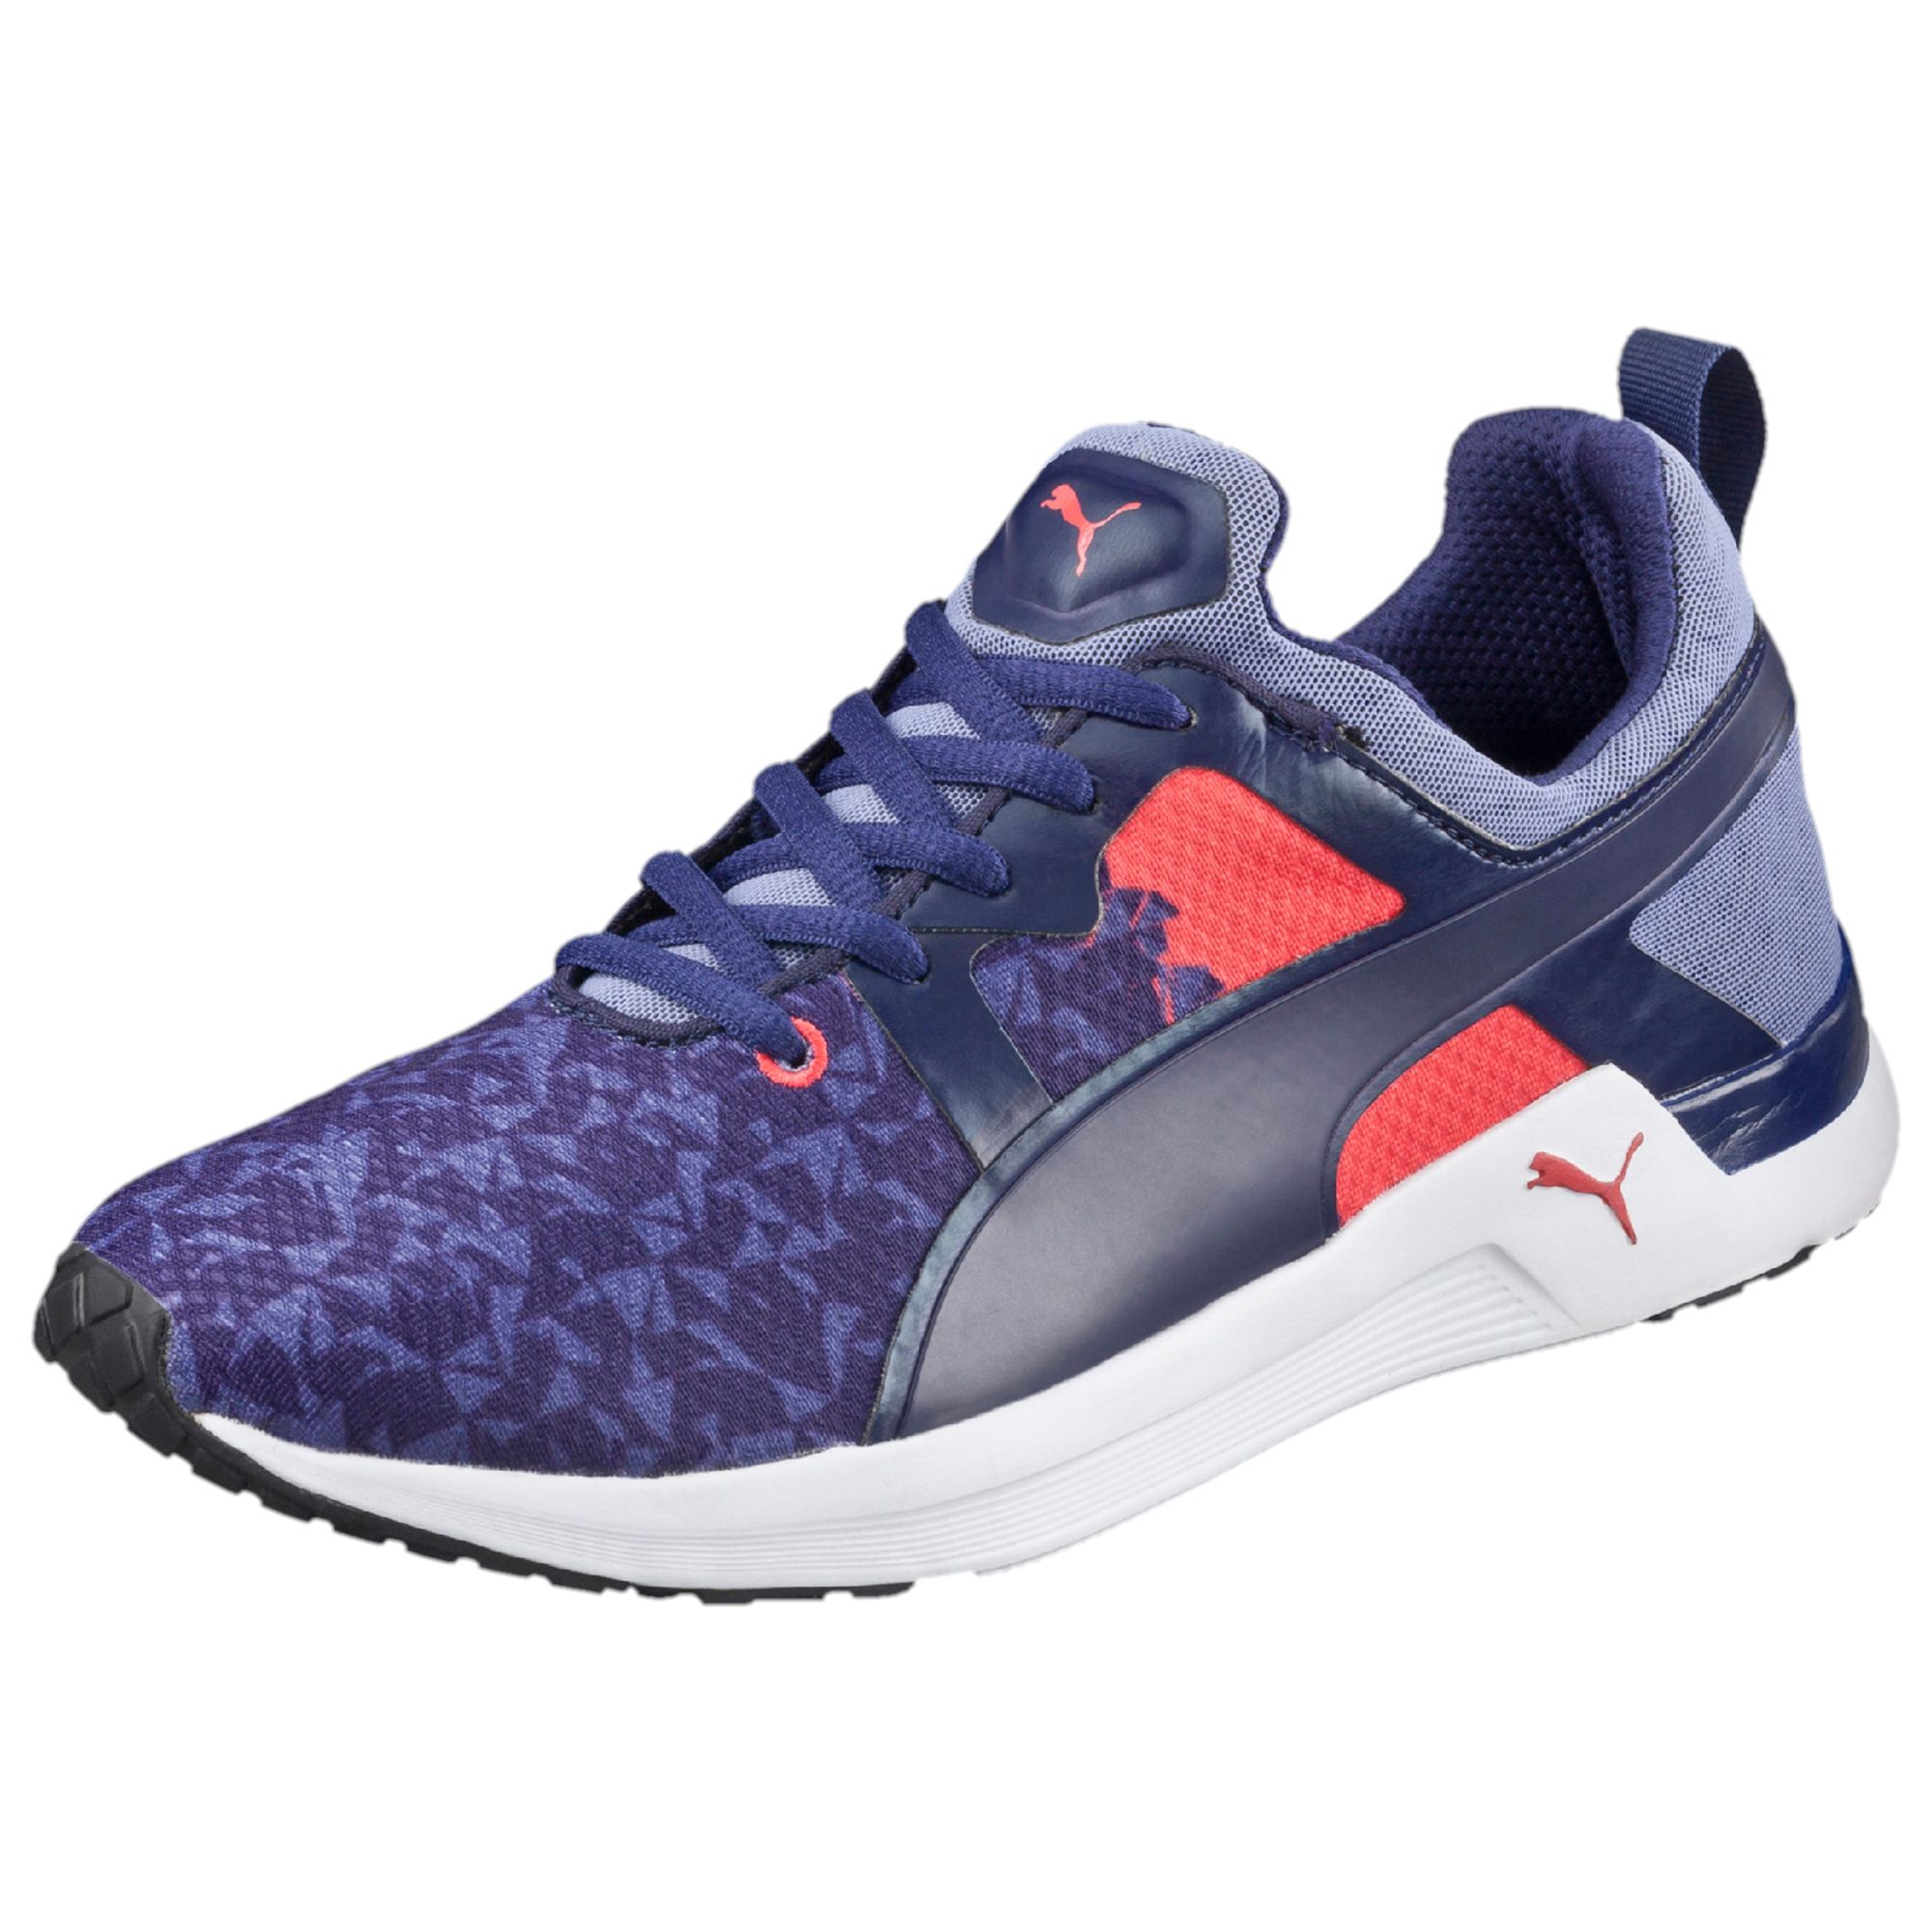 puma pulse xt graphic damen fitness schuhe schuhe training. Black Bedroom Furniture Sets. Home Design Ideas